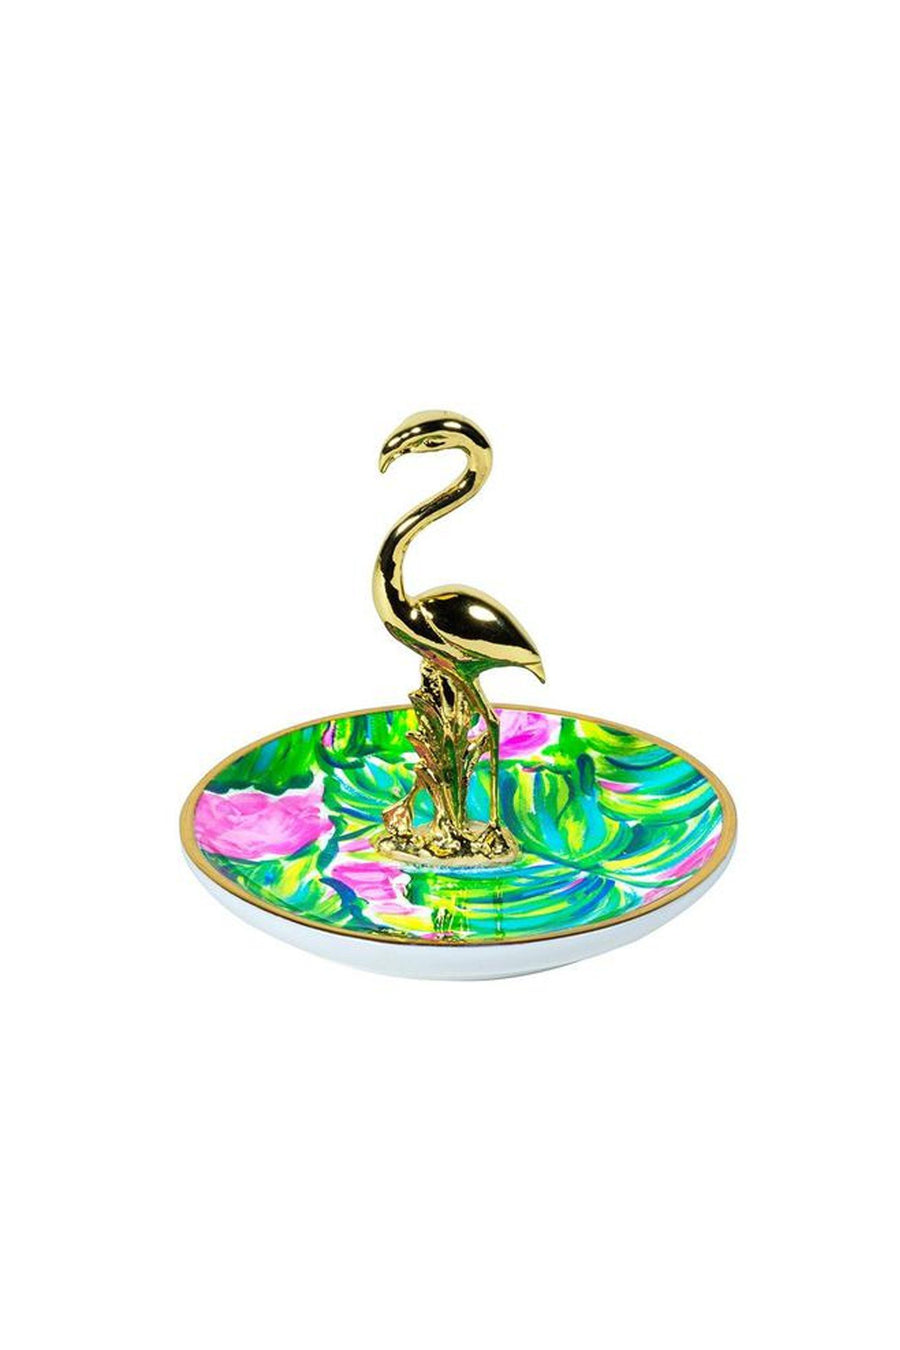 Lilly Pulitzer Ring Holder, Accessories, Sunny and Southern, - Sunny and Southern,